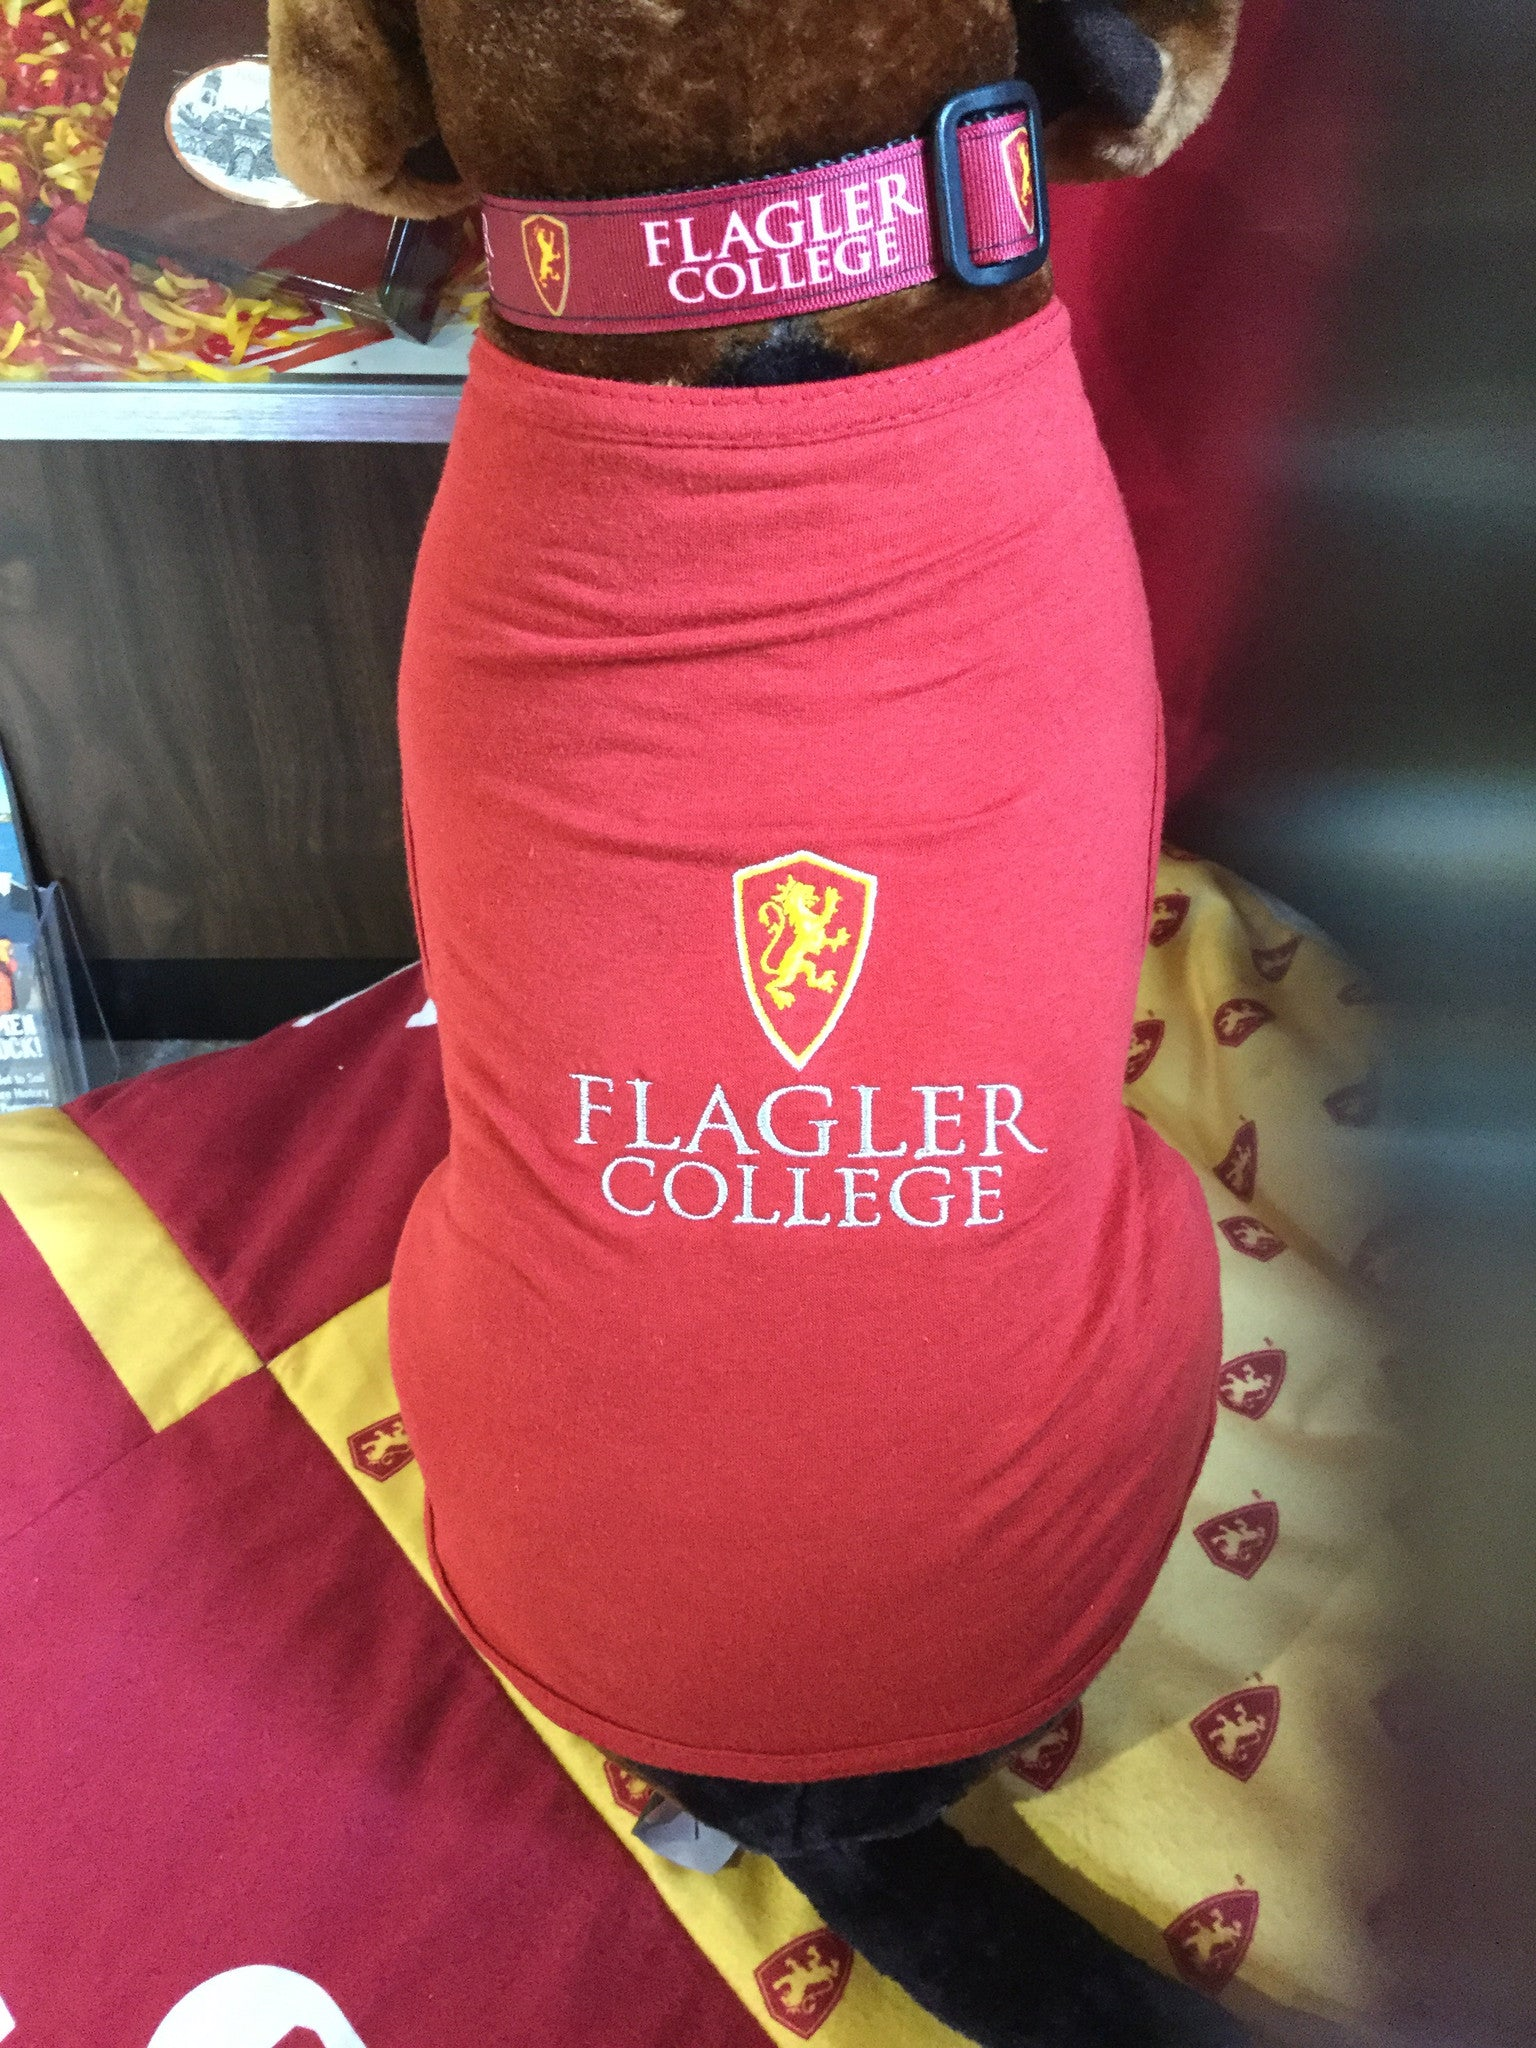 red dog shirt with Flagler college embroidered in white and shield embroidered in yellow and red